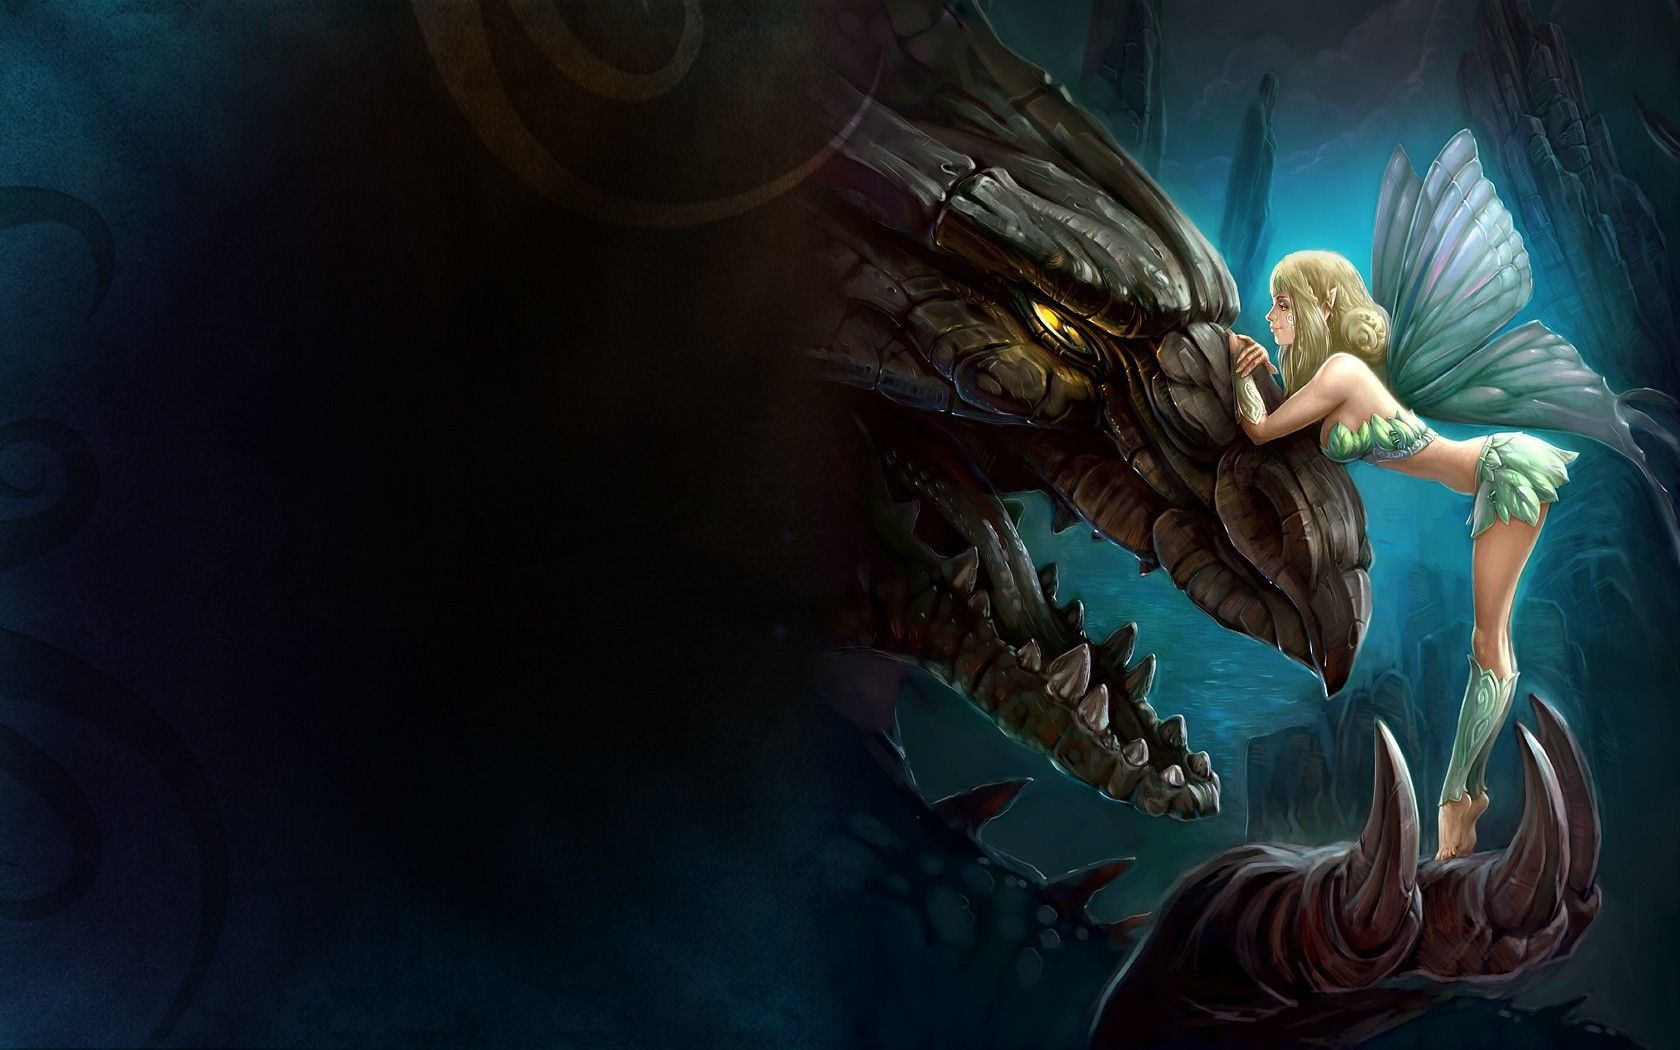 1680x1050 The girl and the dragon wallpapers and images - wallpapers, pictures ...